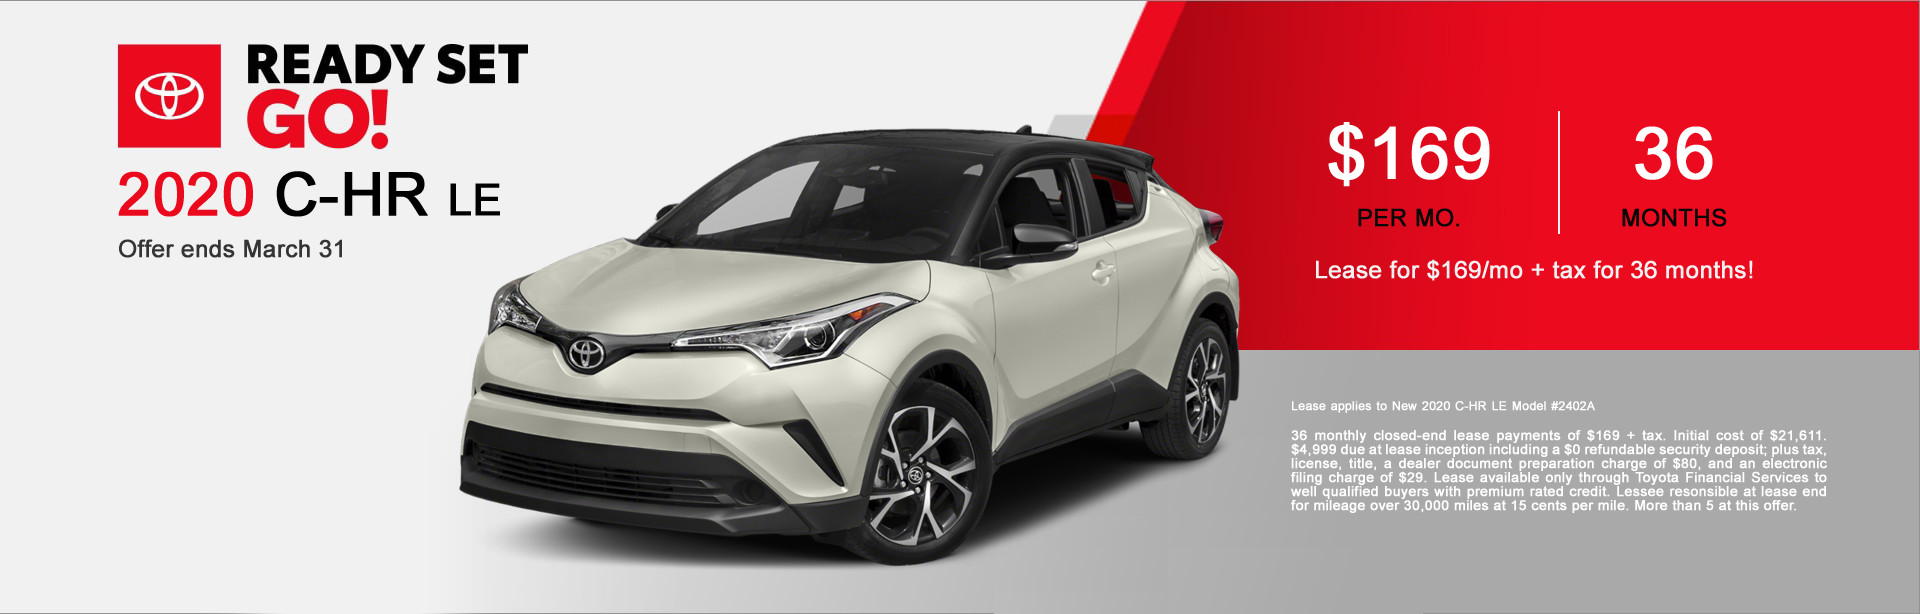 Fremont Toyota C-HR Lease Special Offer